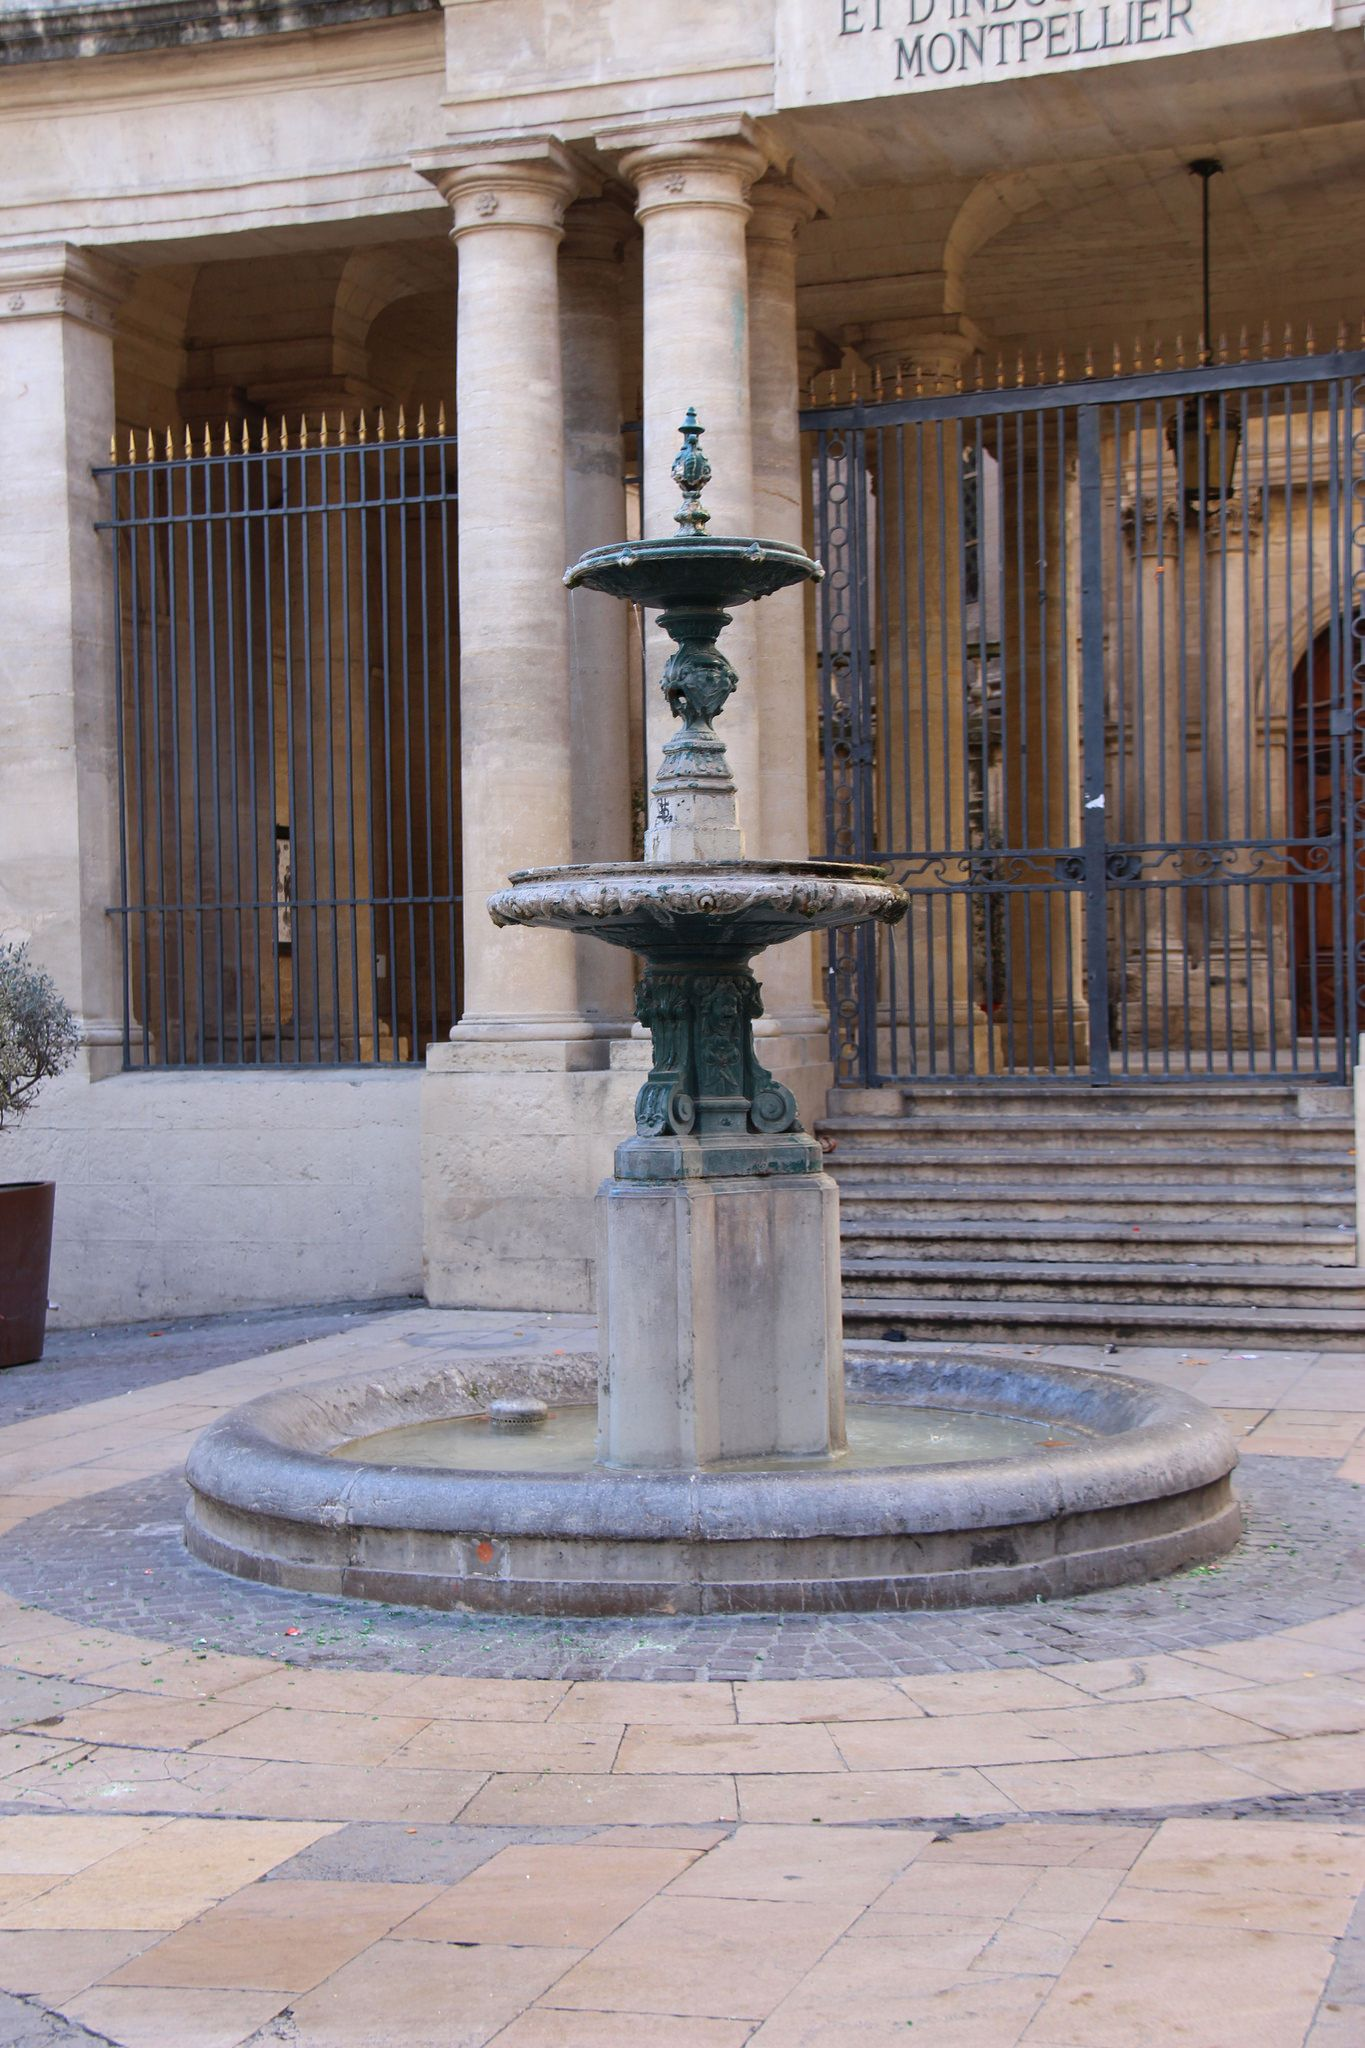 Le Vieux Montpellier Chambre De Commerce Outdoor Decor Decor Fountain